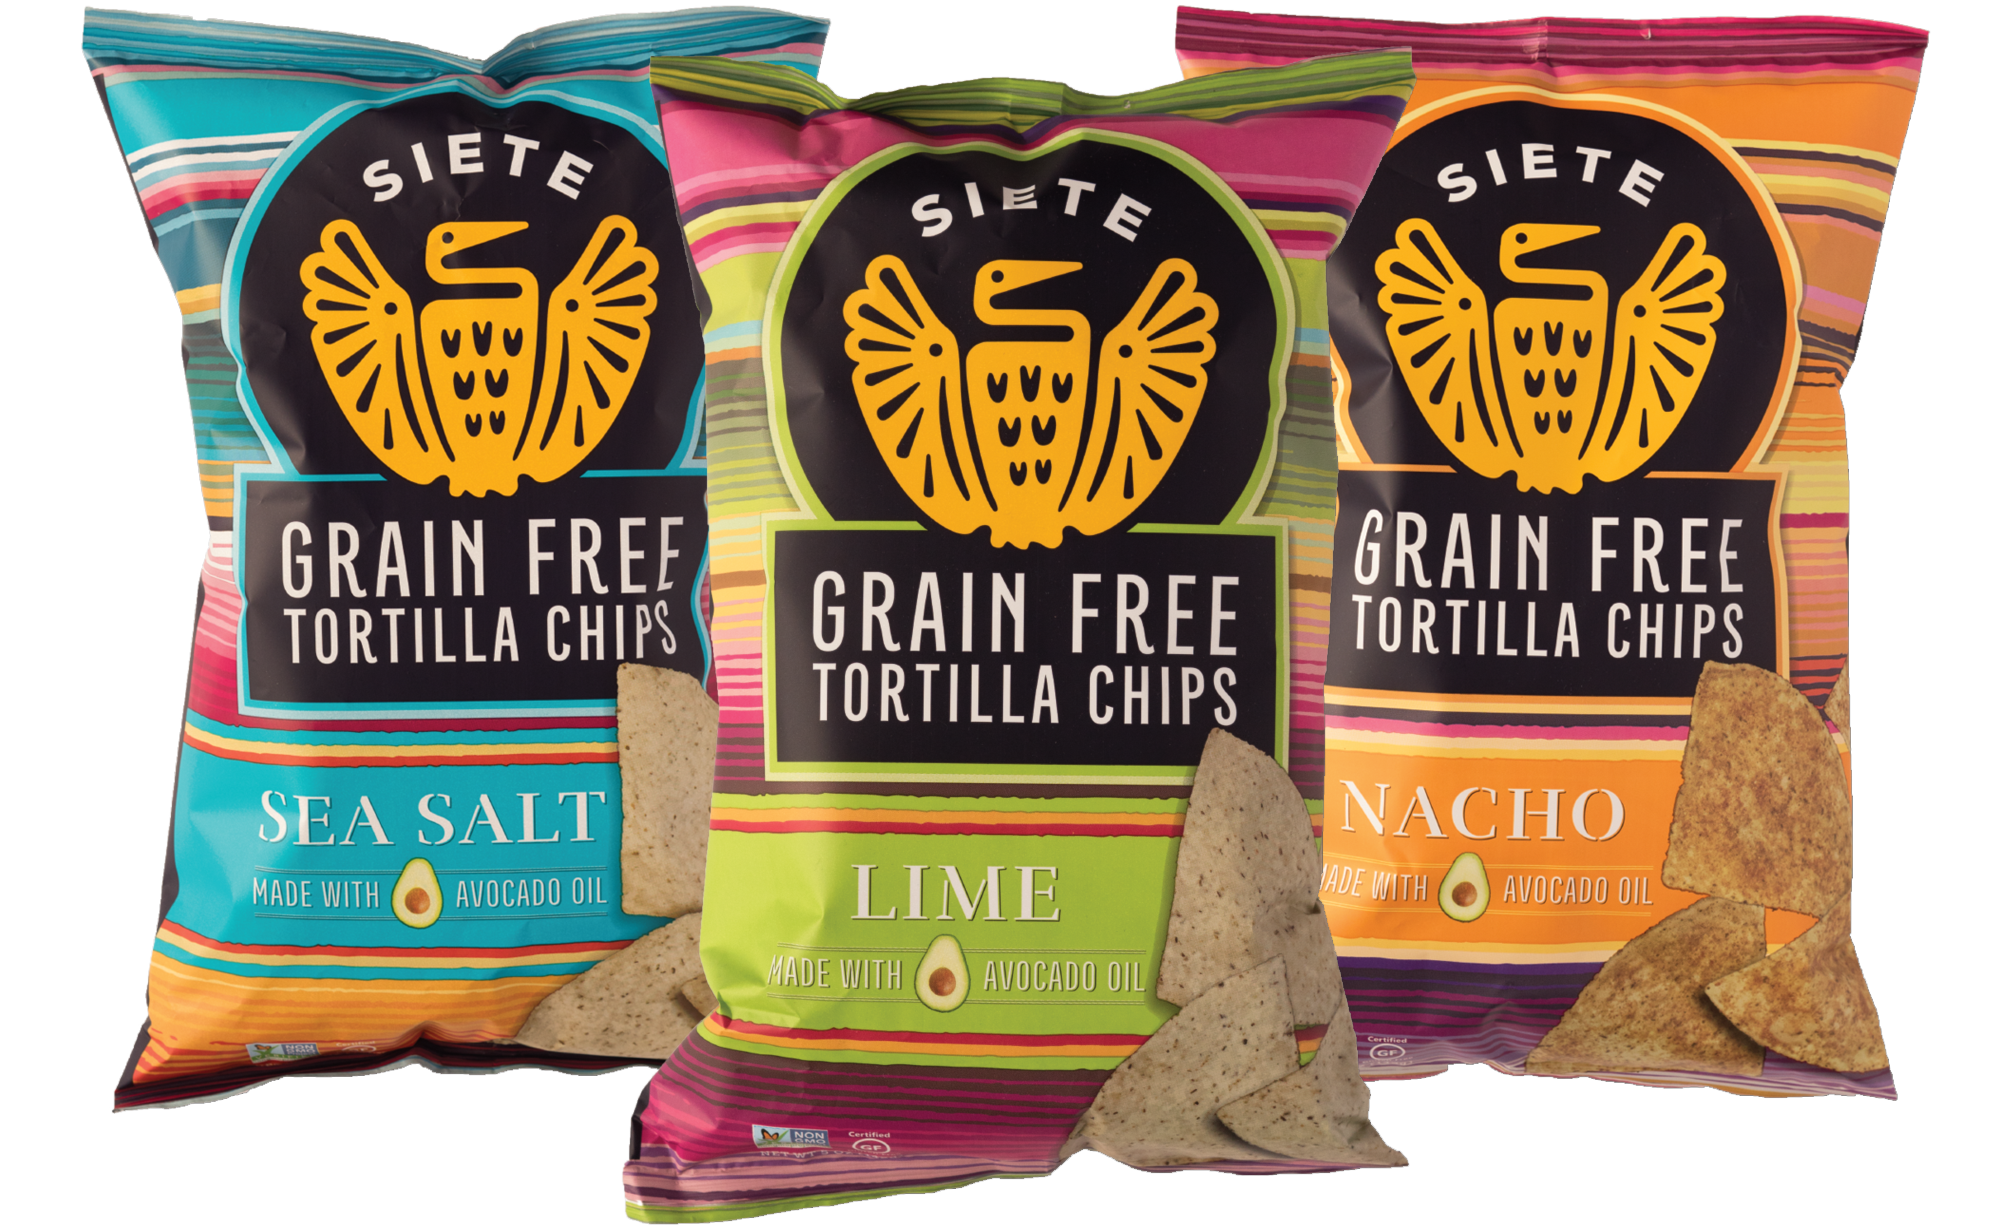 Siete Family Foods opens a grain-free door to Mexican-American dishes